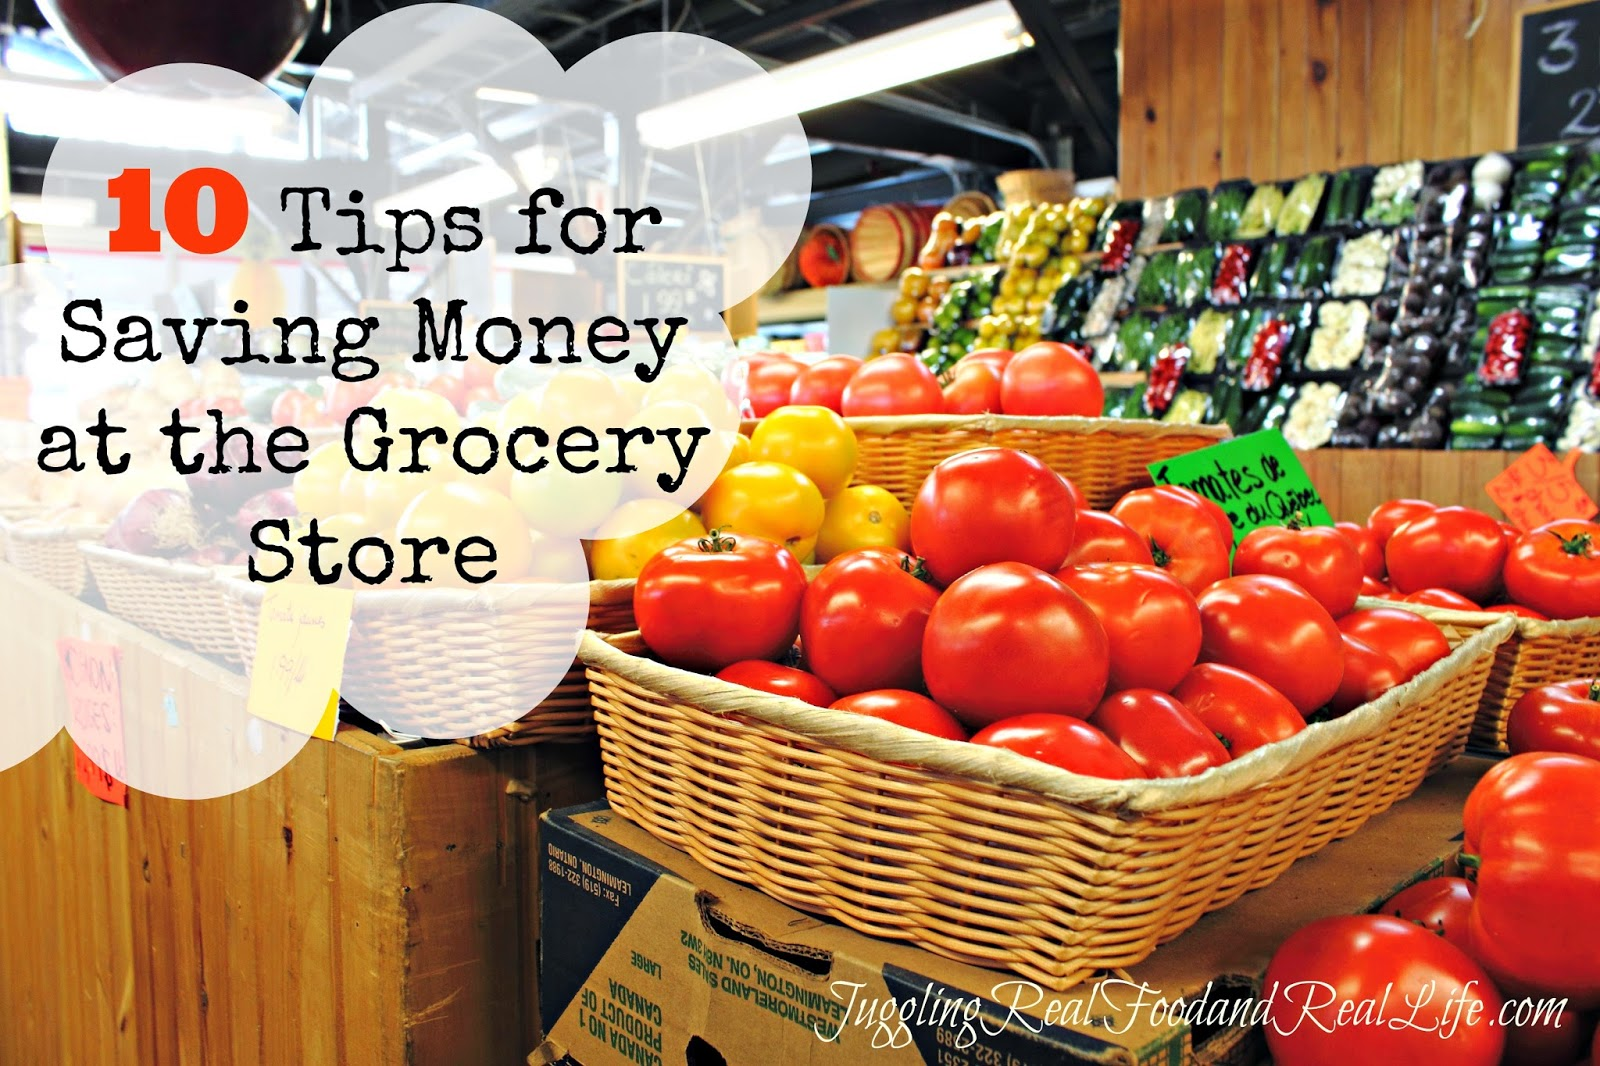 10 Tips for Saving Money at the Grocery Store